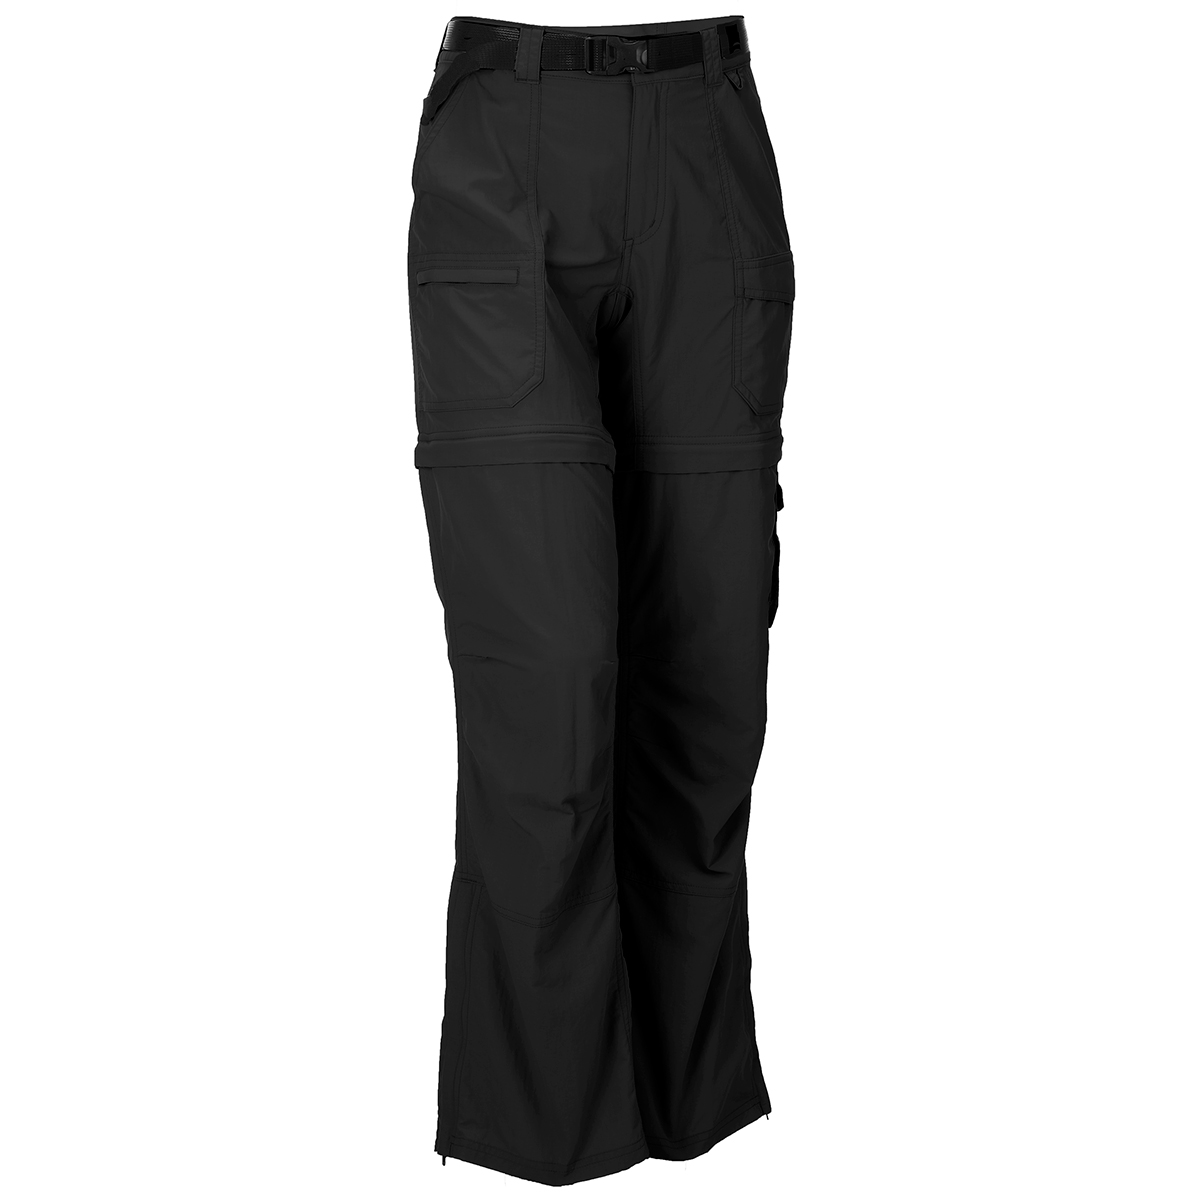 Ems Women's Camp Cargo Zip-Off Pants - Black, 0/S